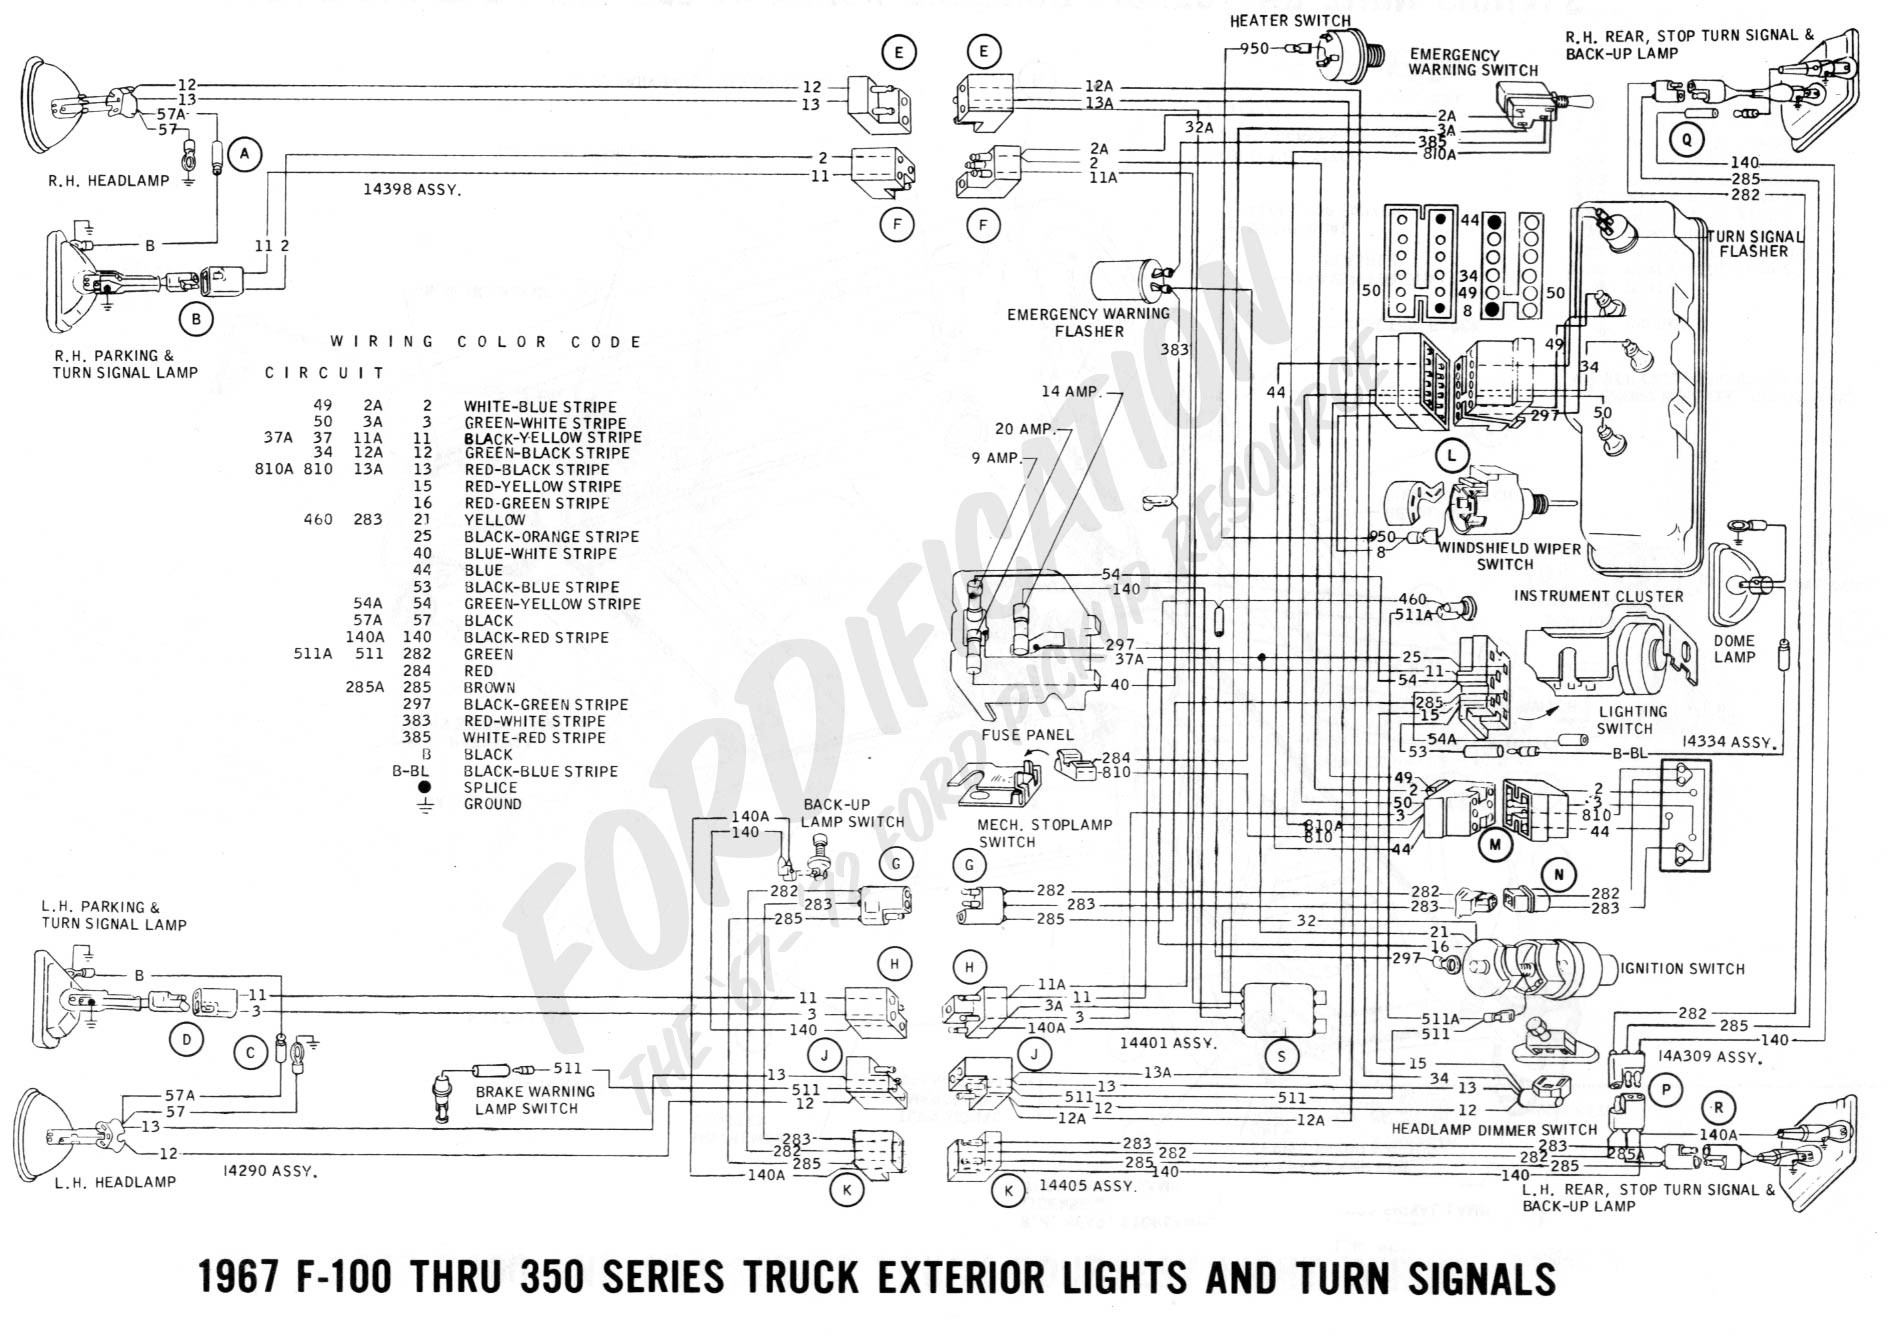 1971 ford f250 wiring diagram ks 5097  ford ranger trailer wiring harness likewise 1956 ford  ford ranger trailer wiring harness